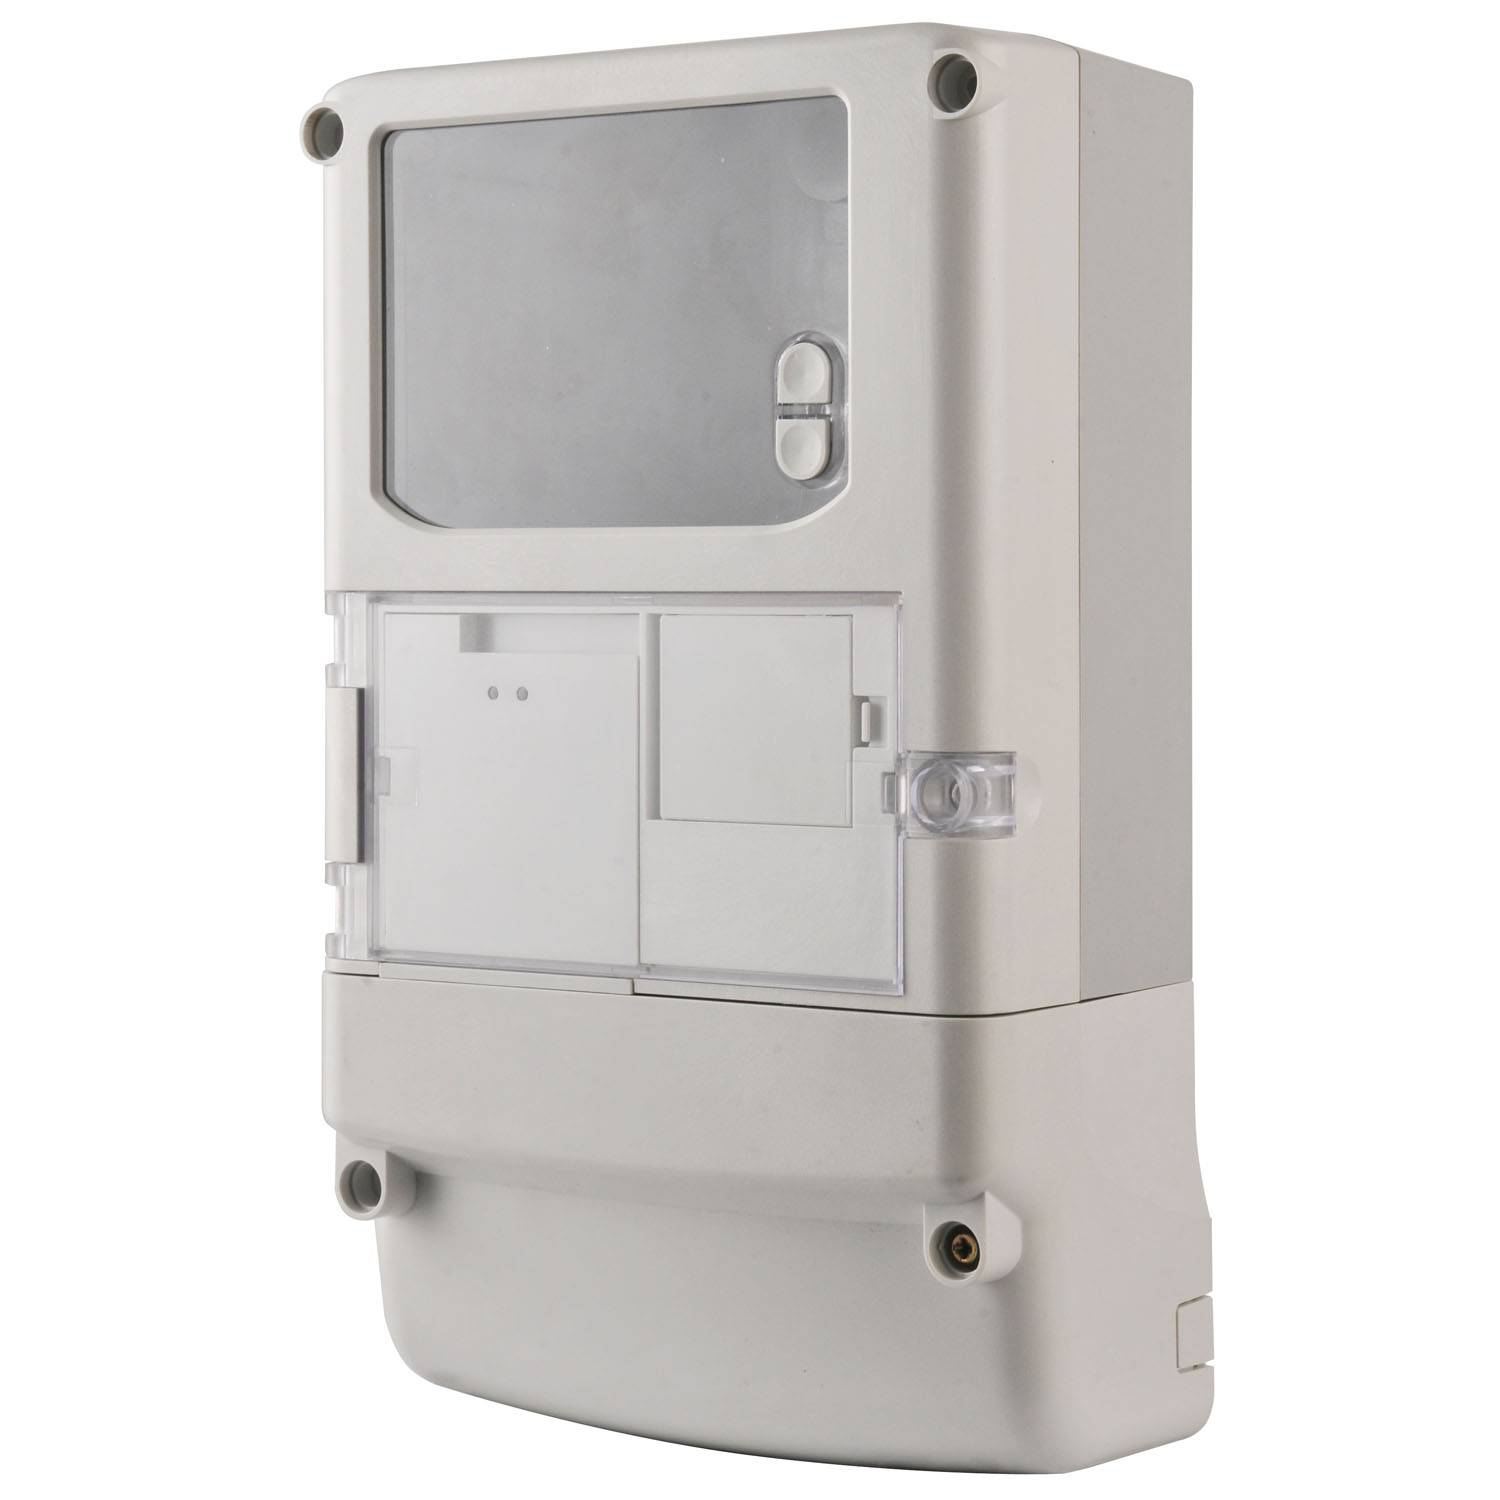 Three Phase Electric Enclosure Wall Mount (DTSD-3060-7) rust proof